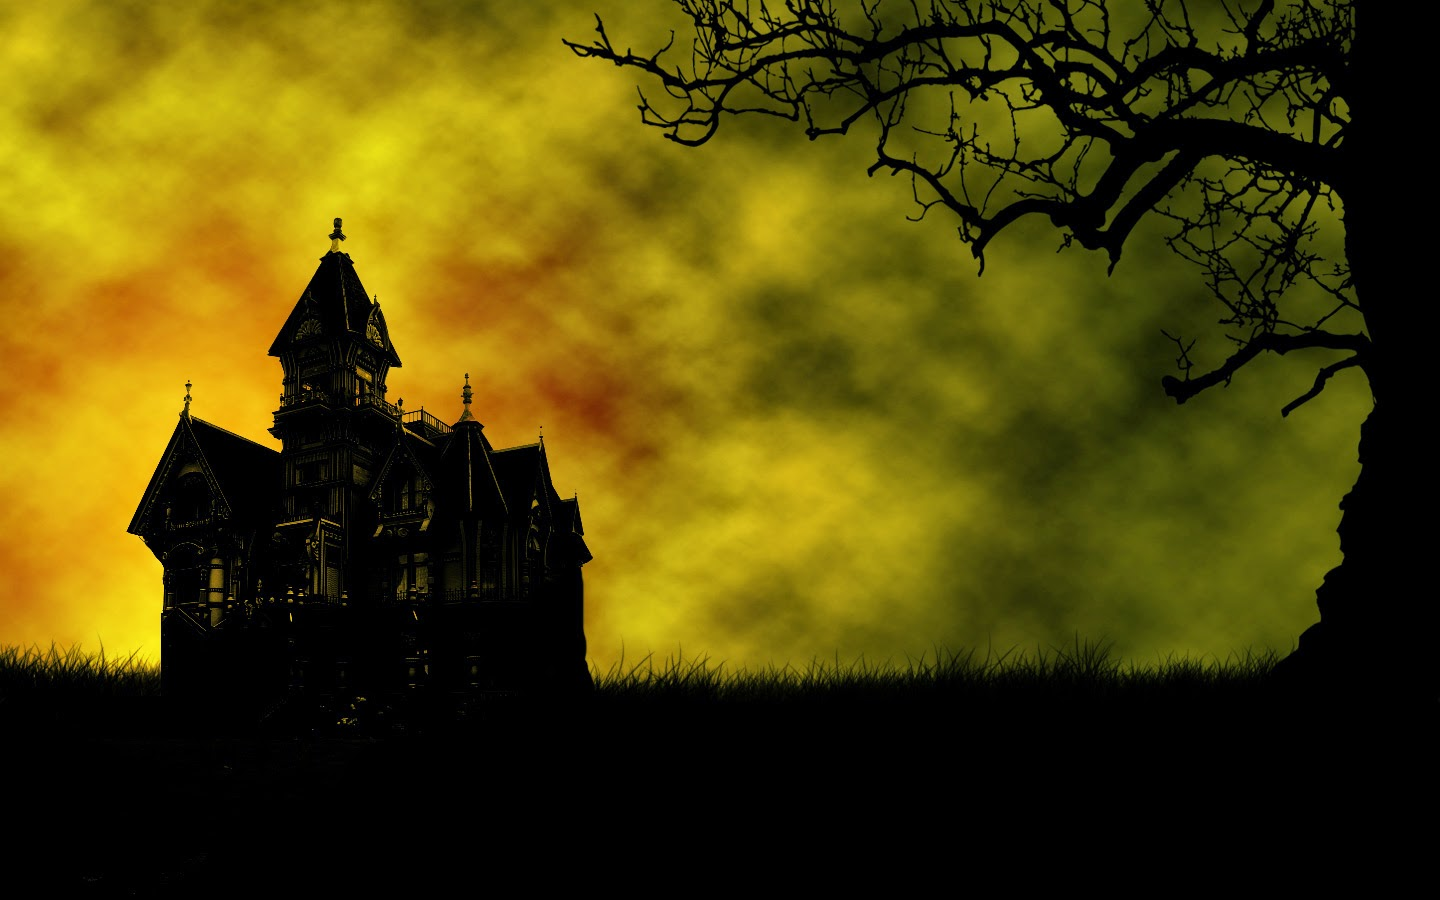 Download Animated Halloween Wallpaper in high resolution for 1440x900